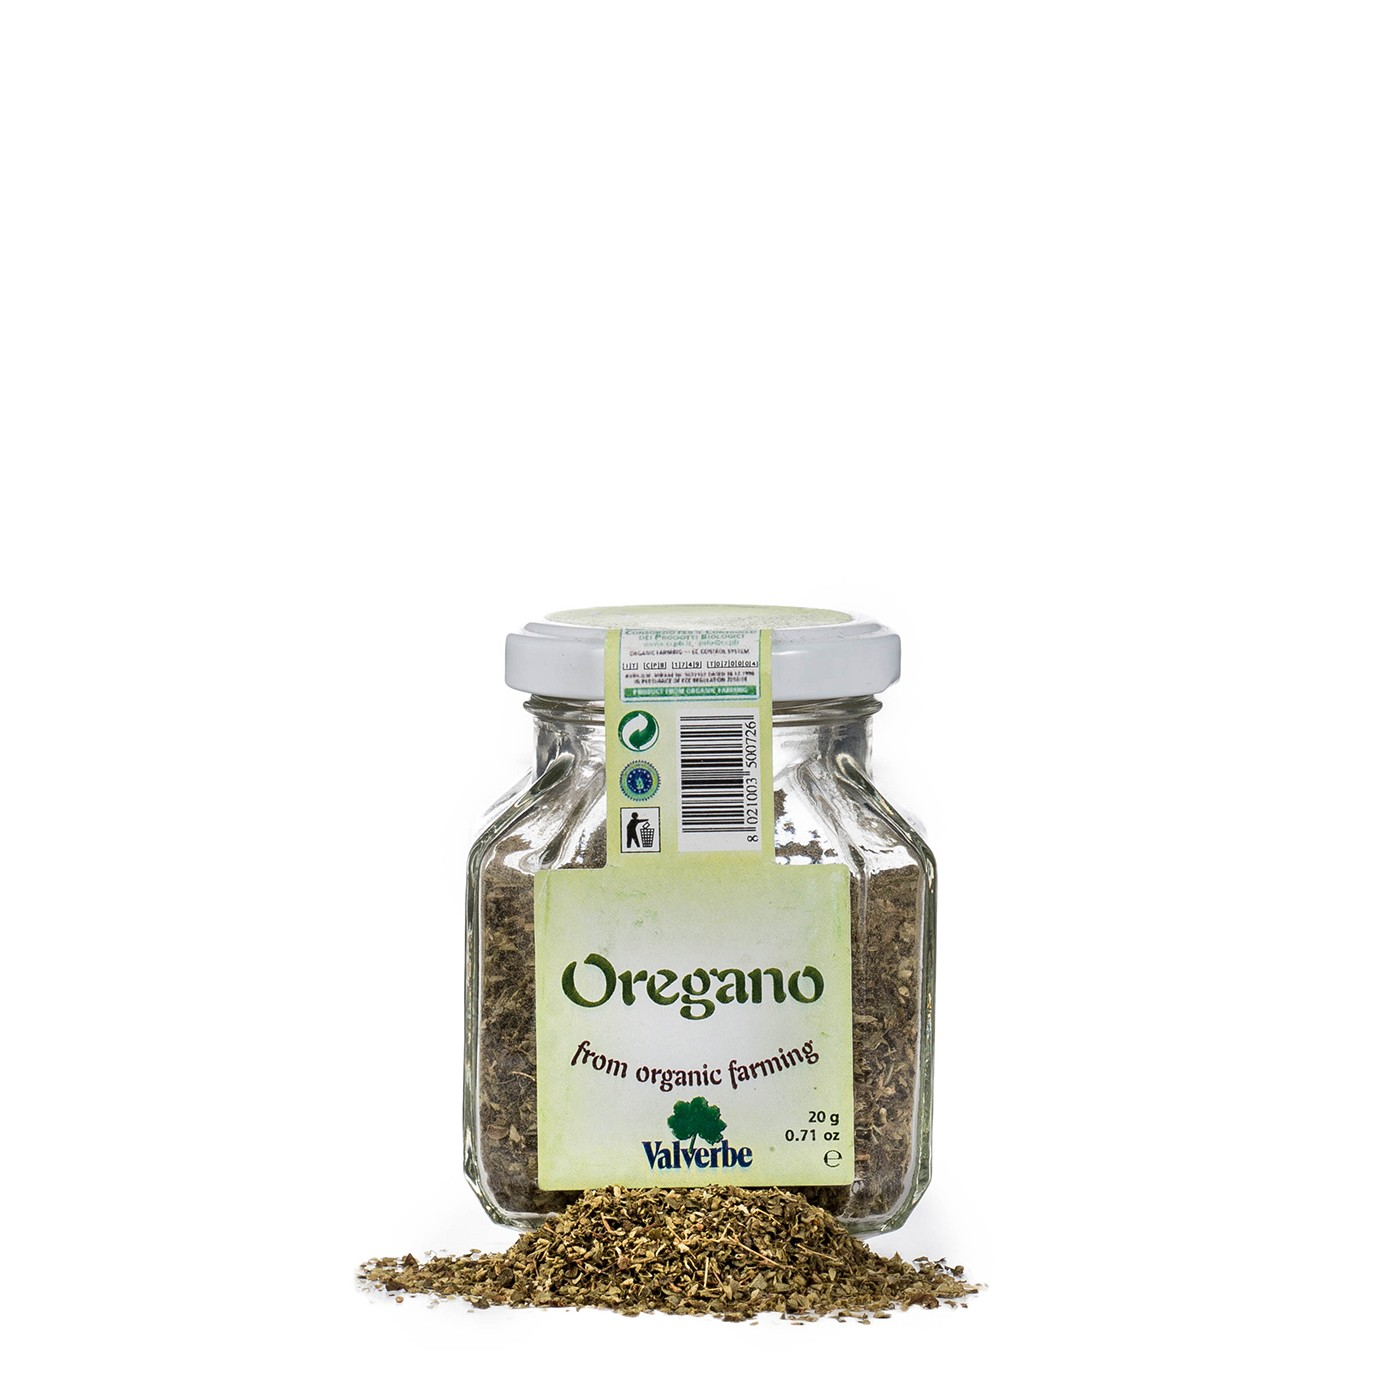 Oregano 1.06 oz